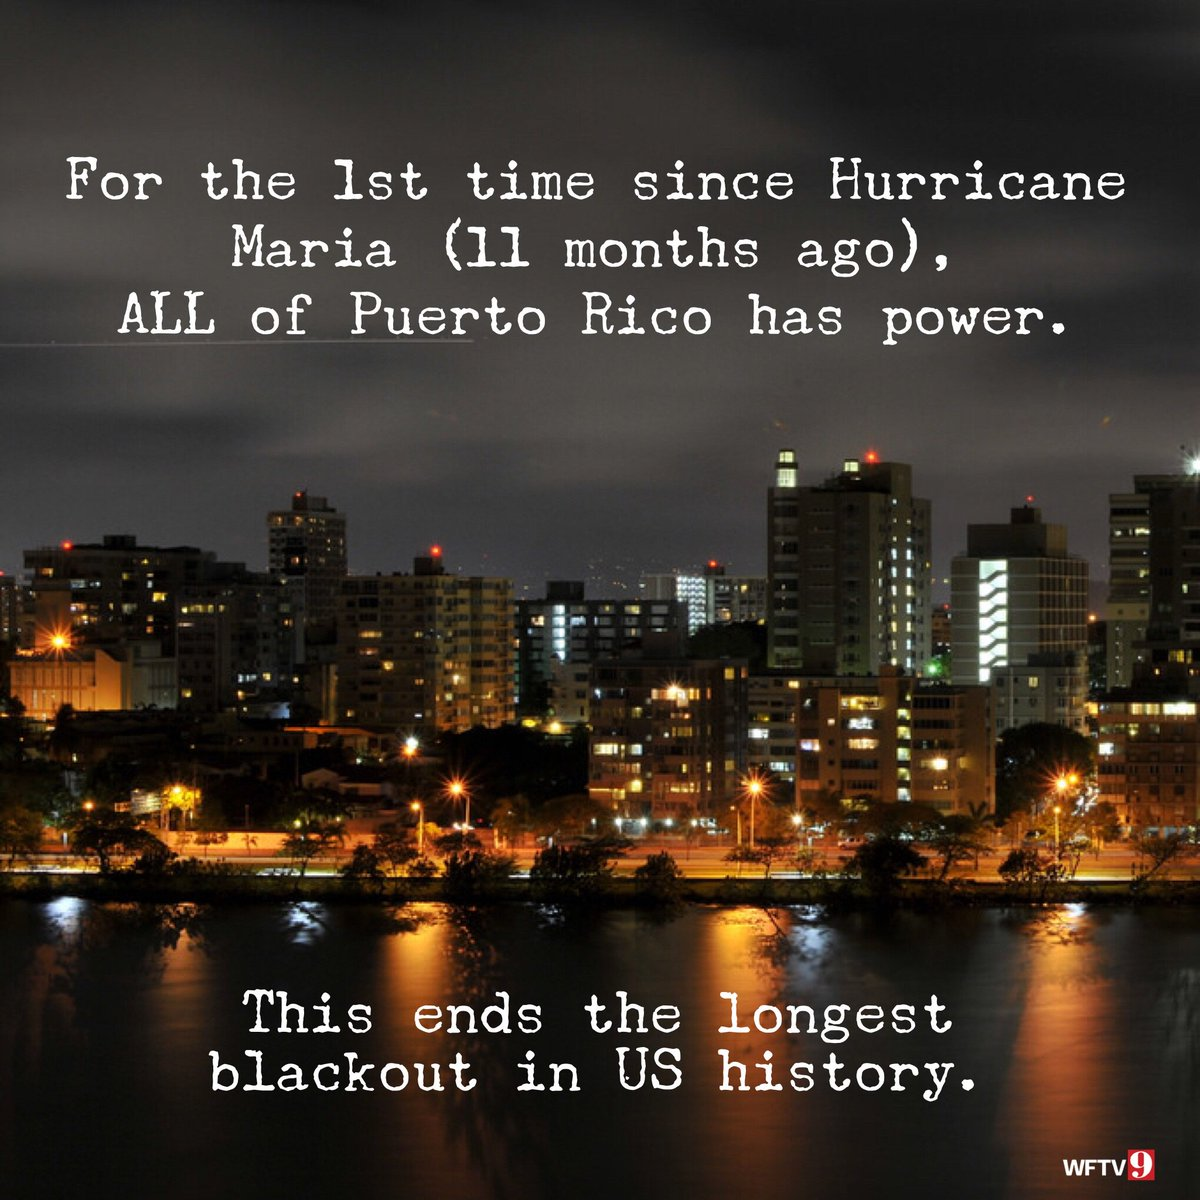 Almost a year later, all power has been restored in Puerto Rico.